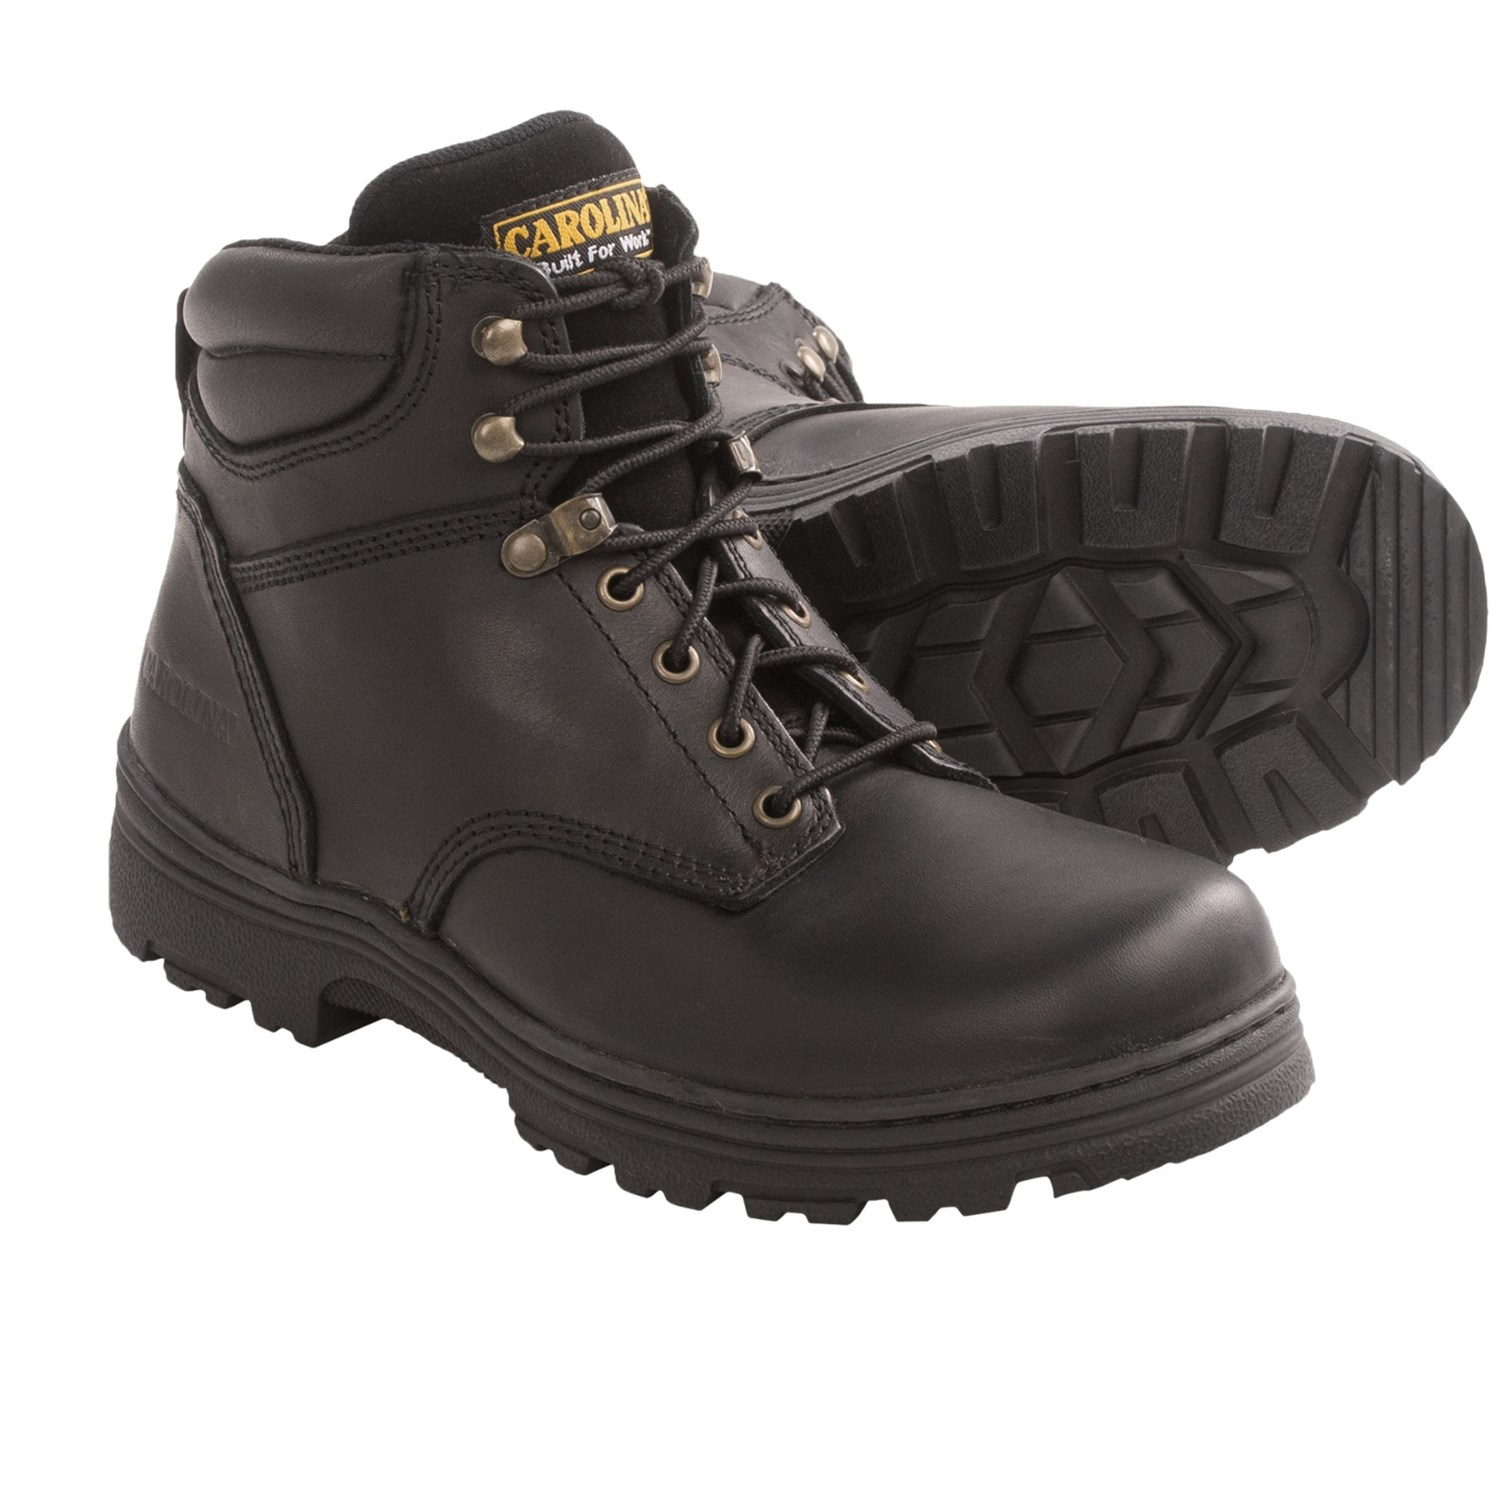 carolina shoe eh work boots for save 32